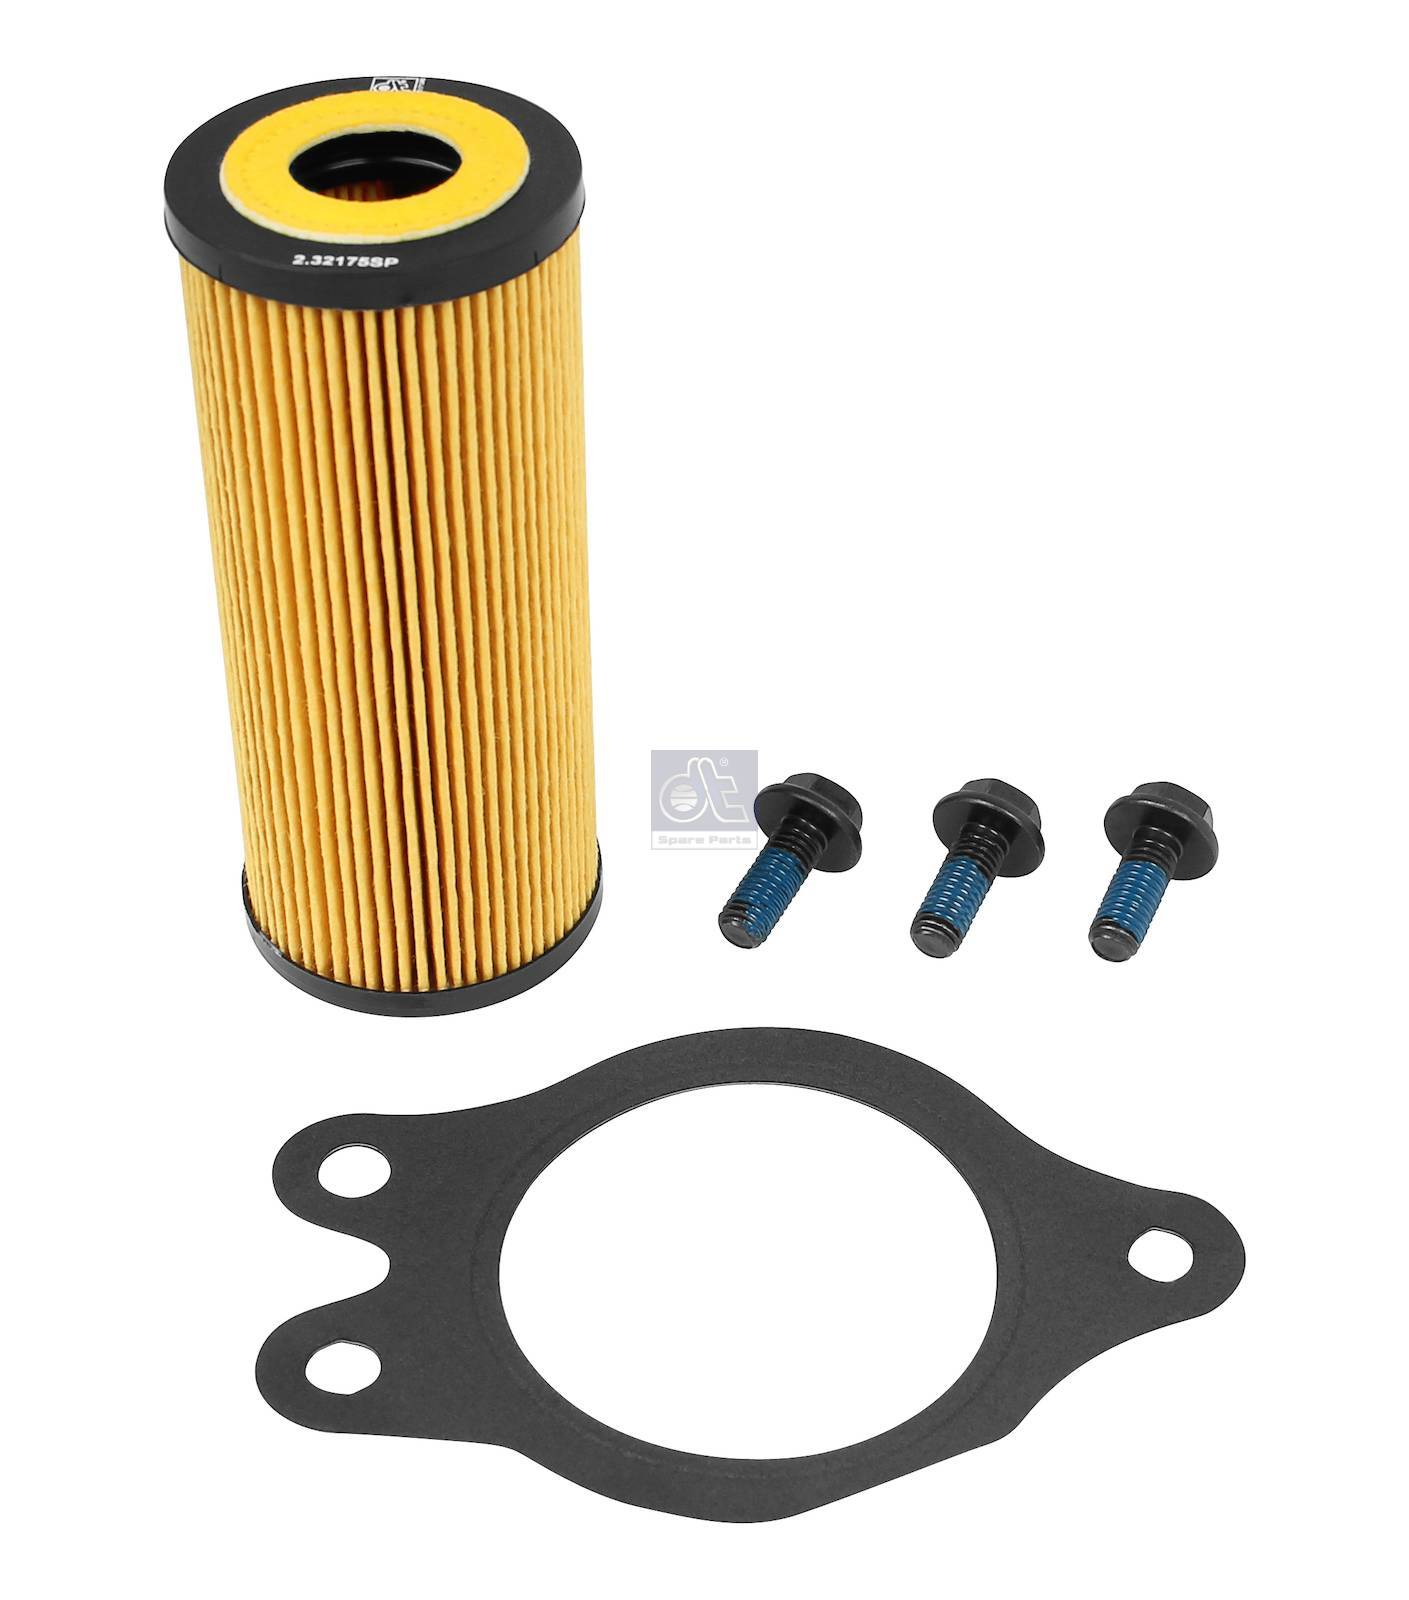 Oil filter kit, gearbox